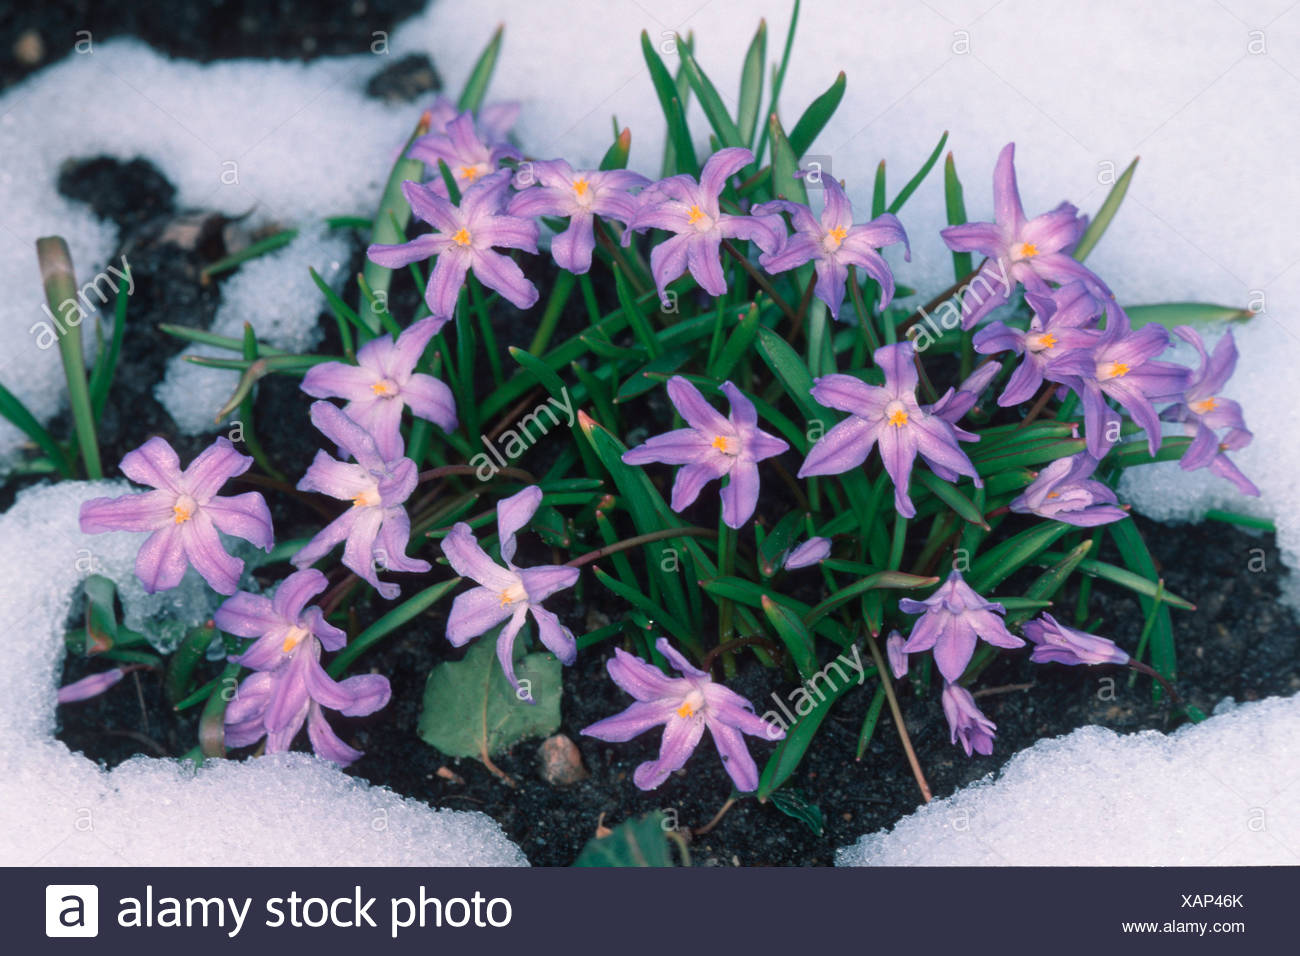 gartenpflanzen, glory of the snow chionodoxa luciliae schneestolz blumen flowers, Design ideen